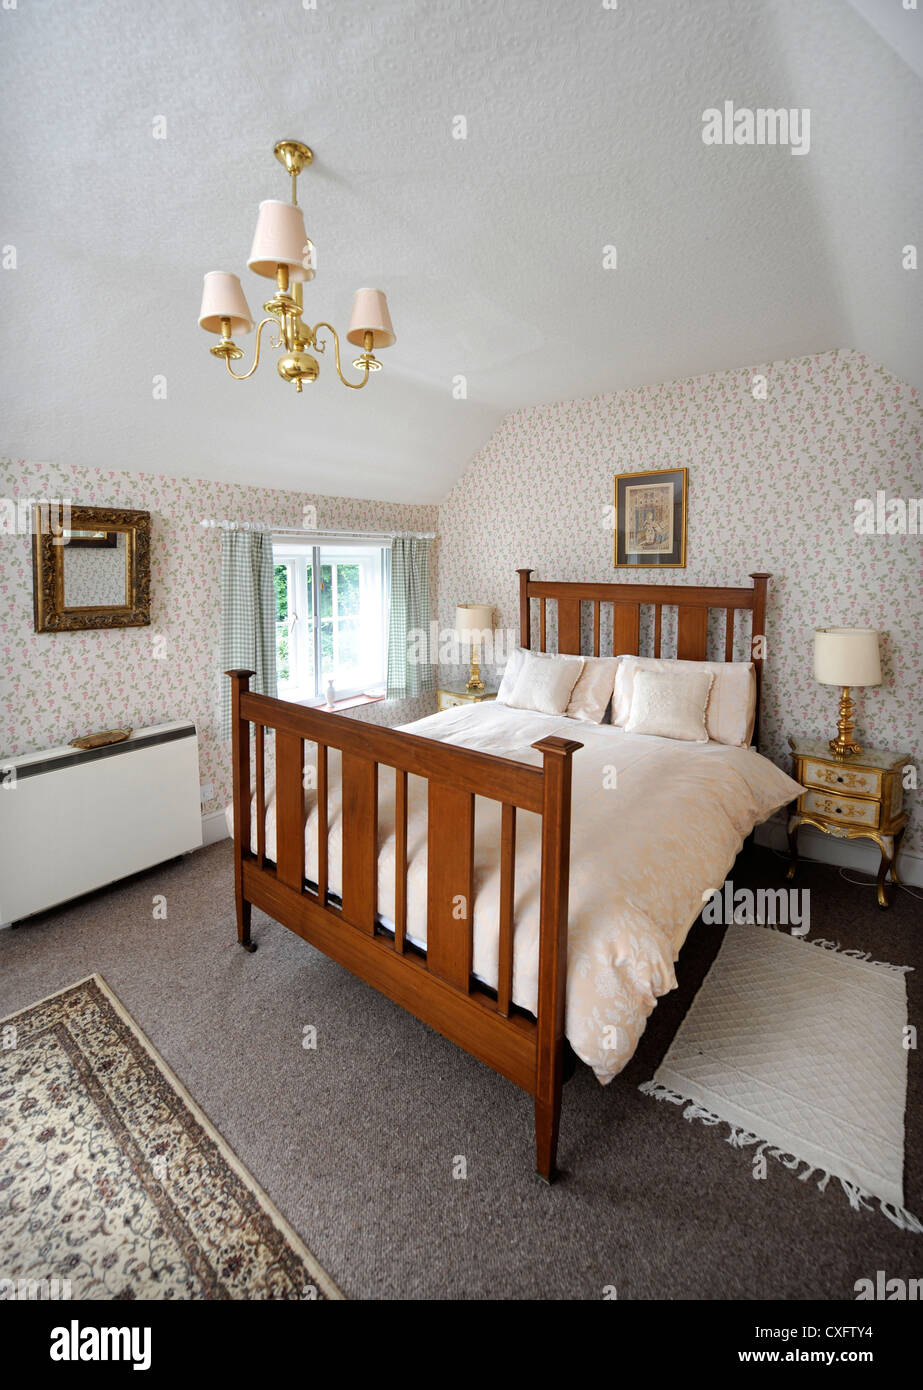 Small double bedroom in a holiday let Herefordshire UK Stock Photo on fitness packages, software packages, catering packages, bath packages, marketing packages,